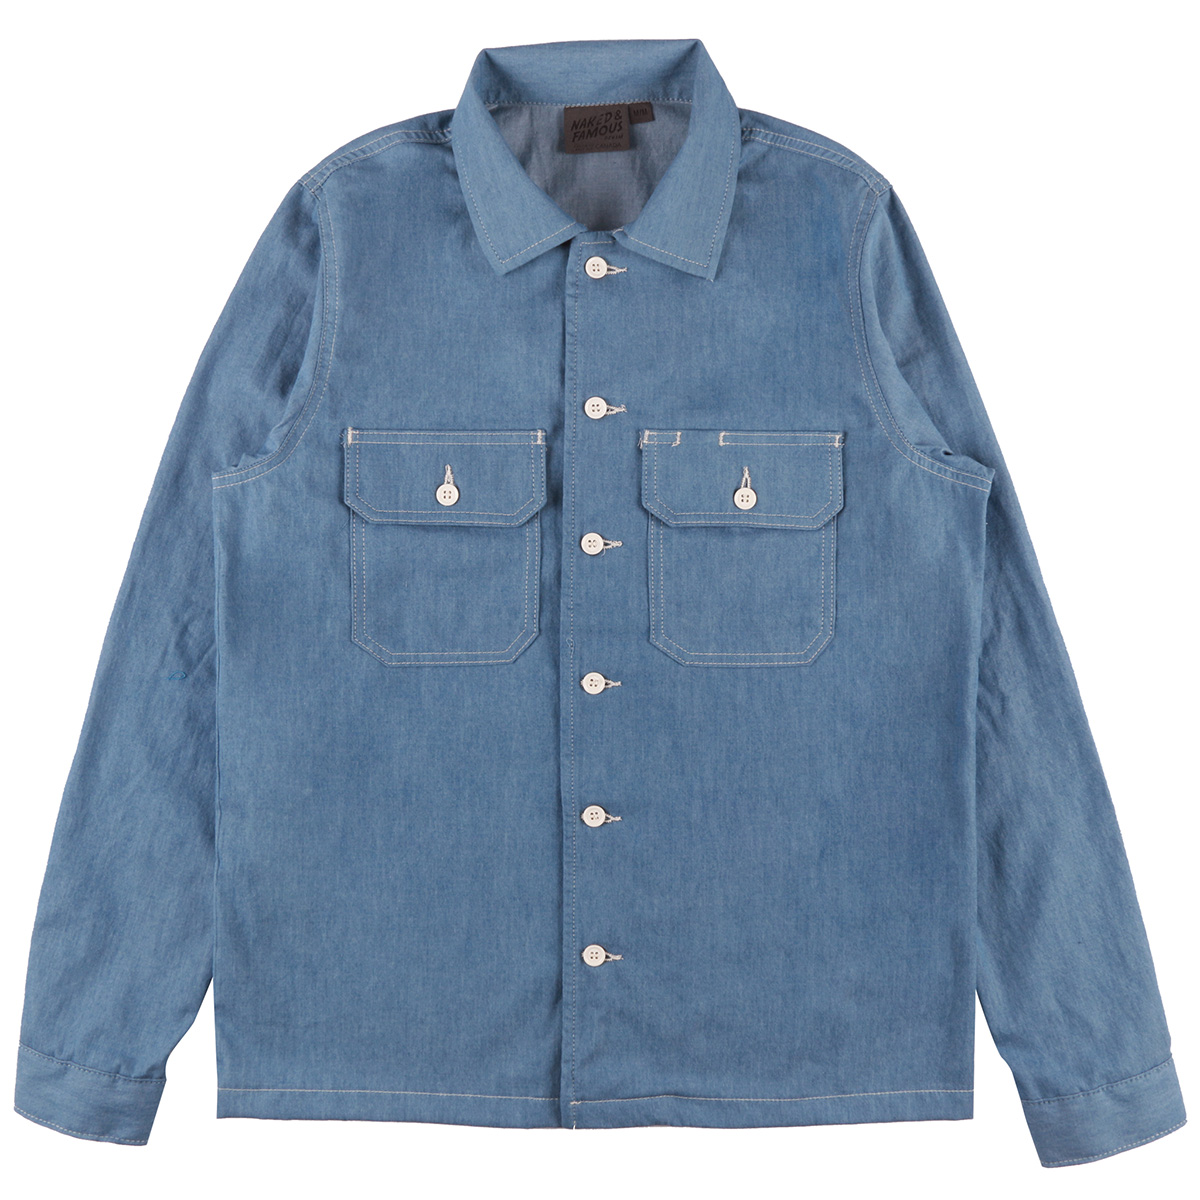 4.5oz BLEACHED DENIM - Workshirt